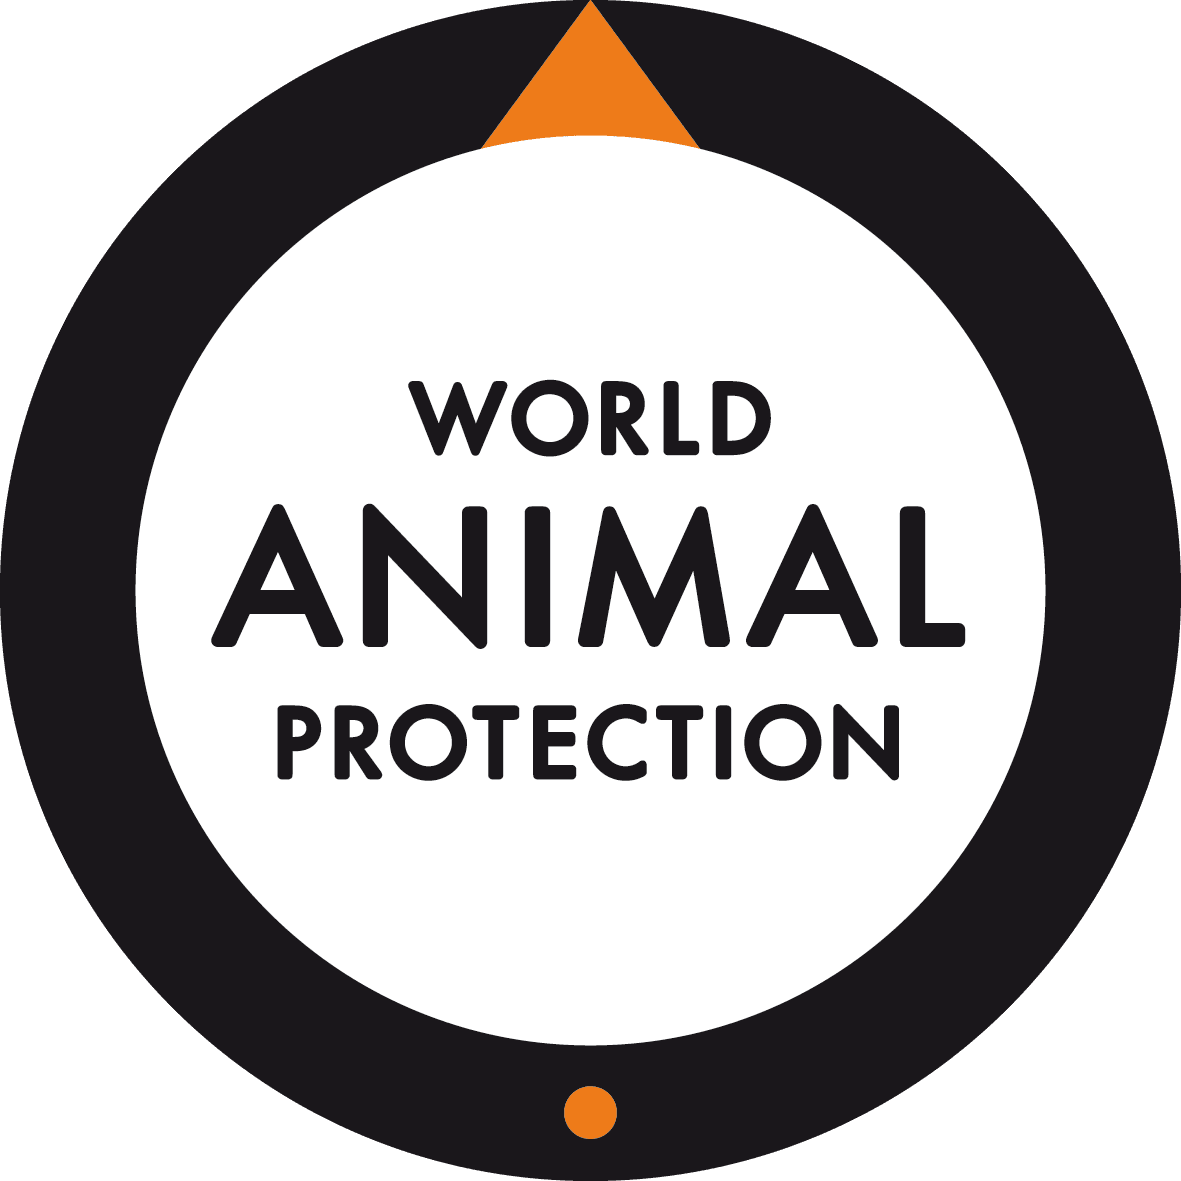 world animal protection certificate